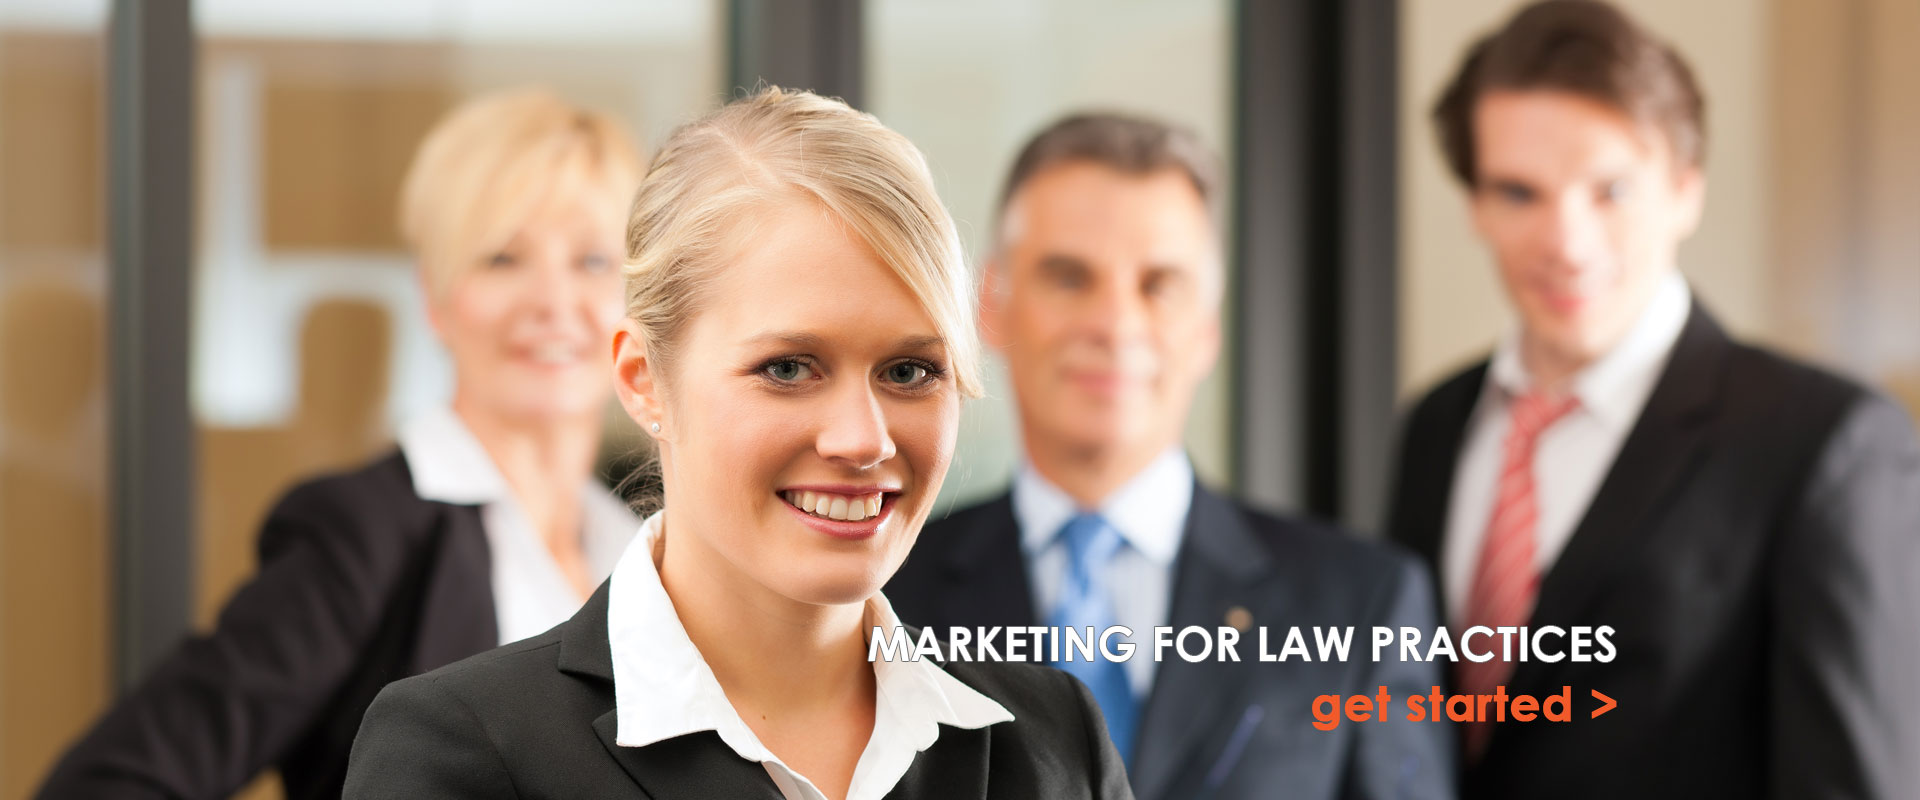 Law Practice Marketing